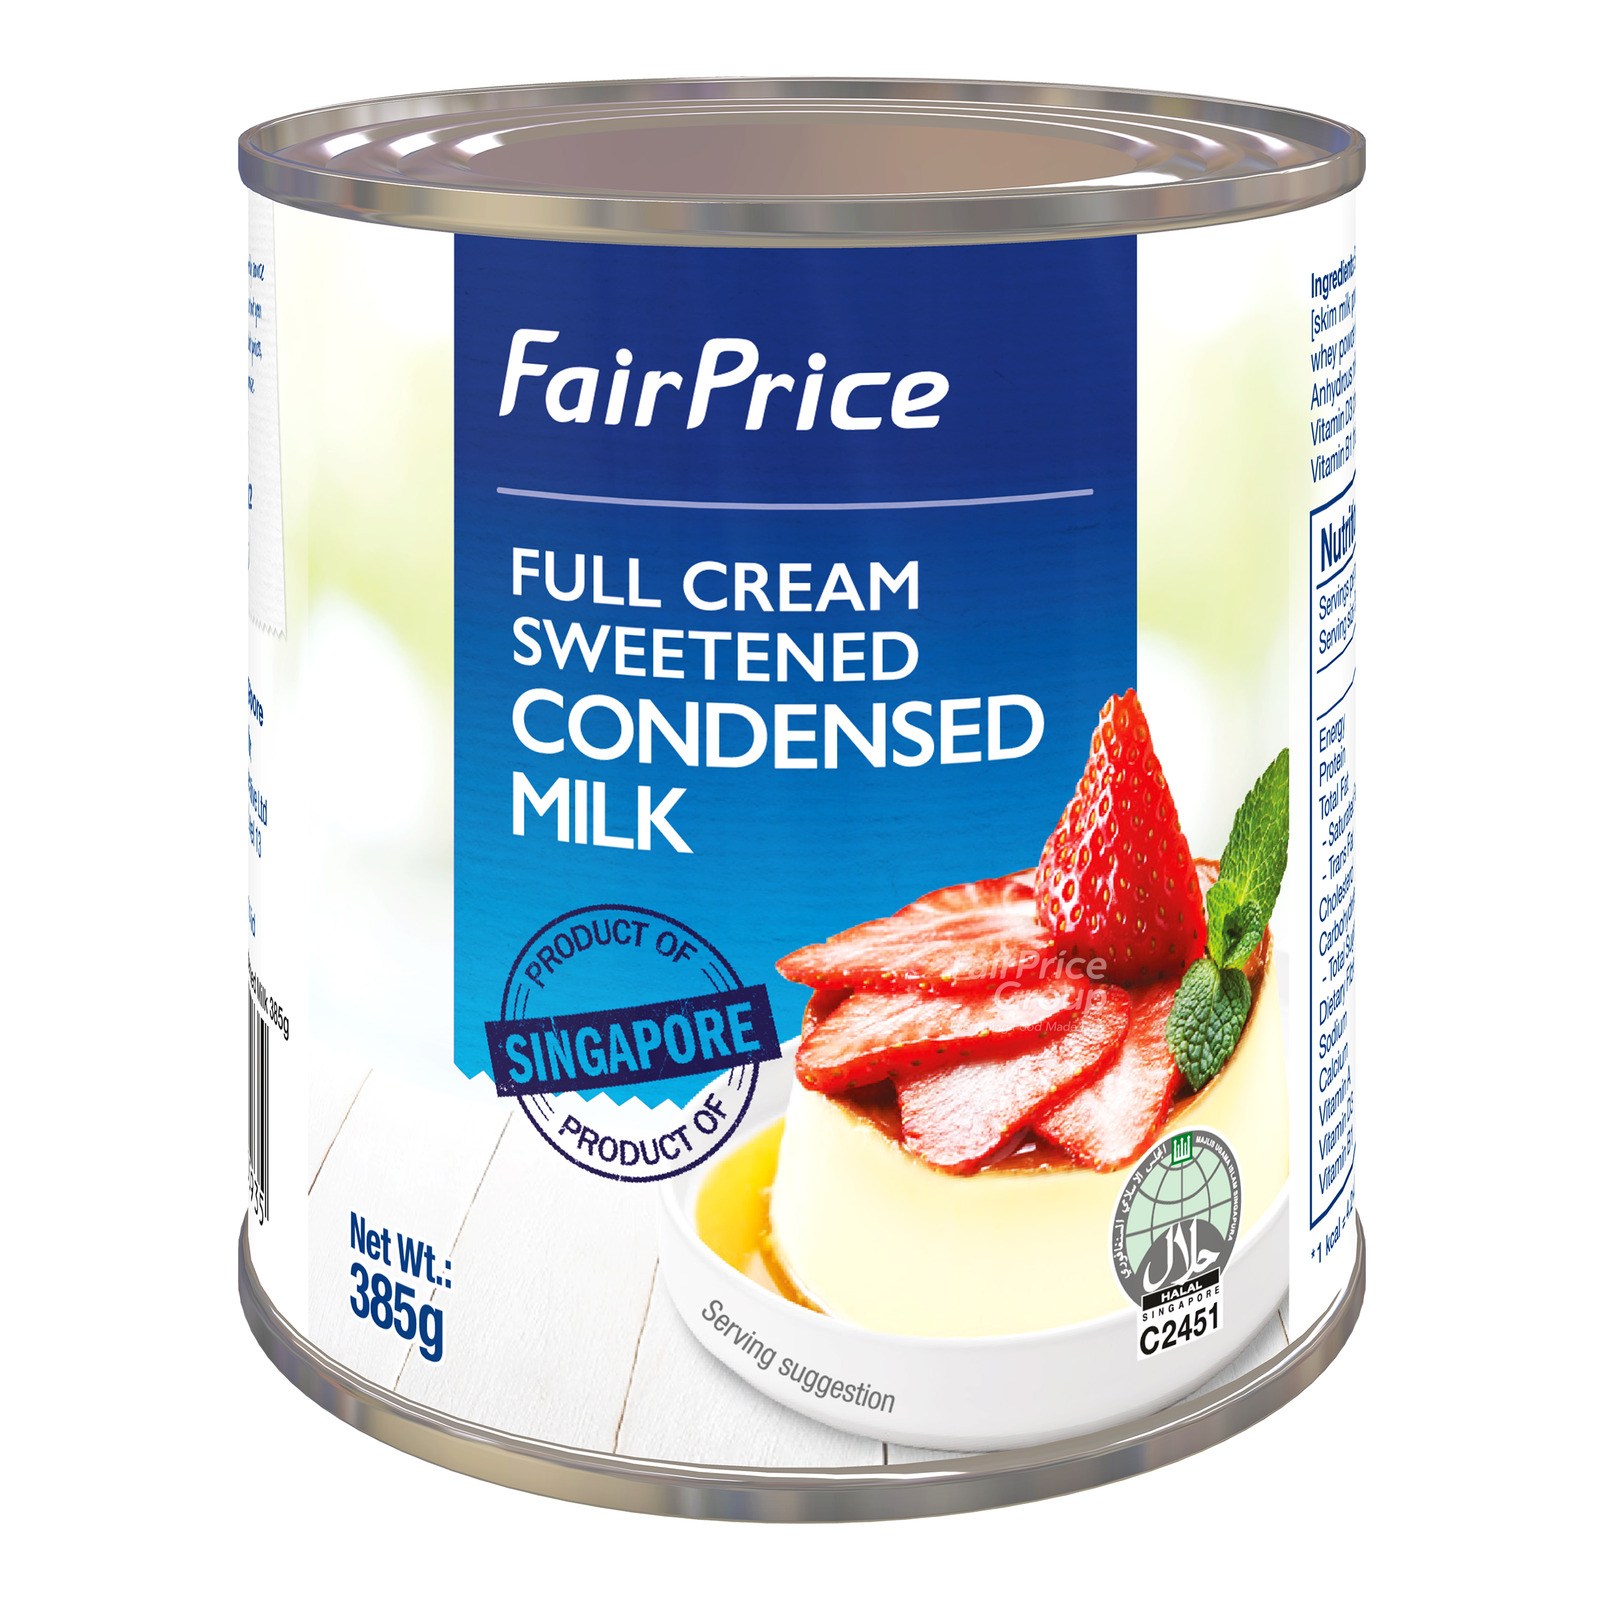 FairPrice Full Cream Sweetened Condensed Milk